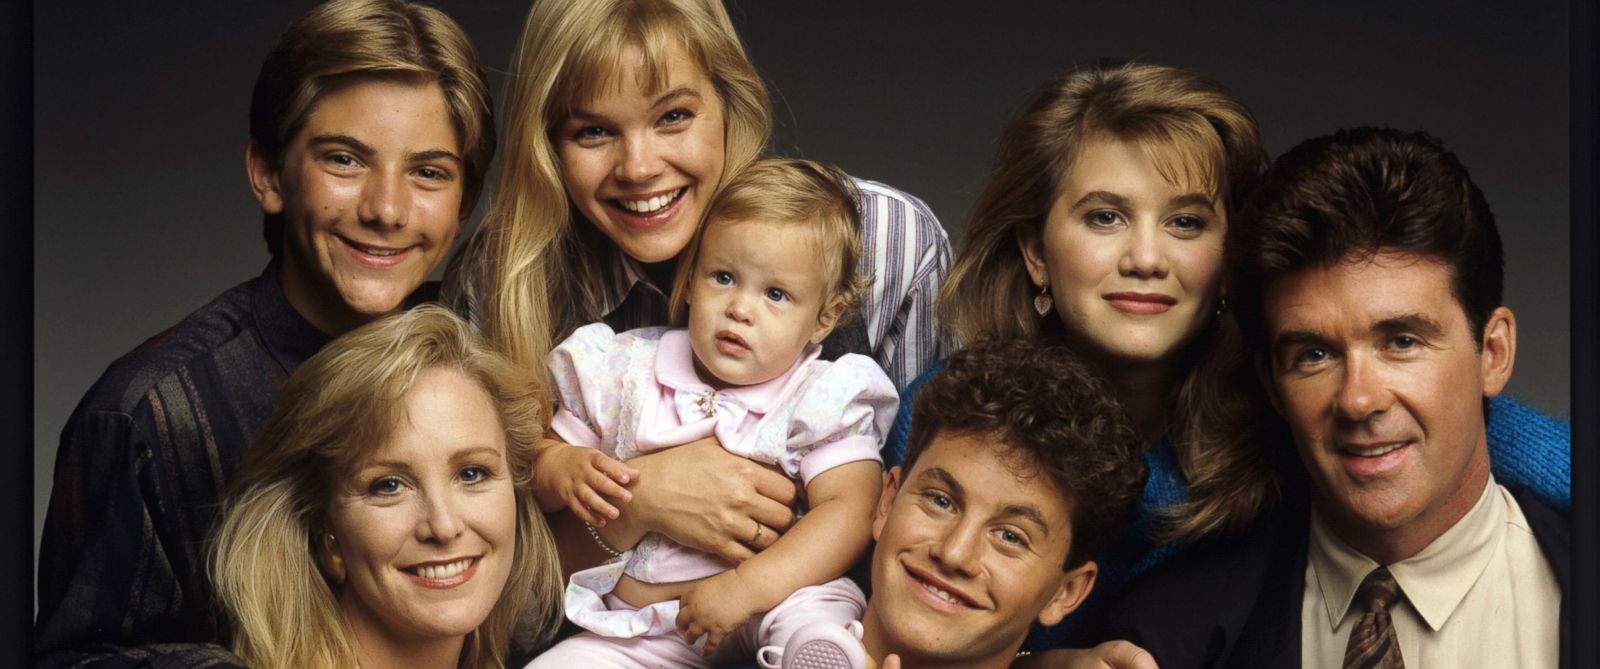 PHOTO: Jeremy Miller, top left, and the cast of Growing Pains appear in this june, 27, 1989 file photo.